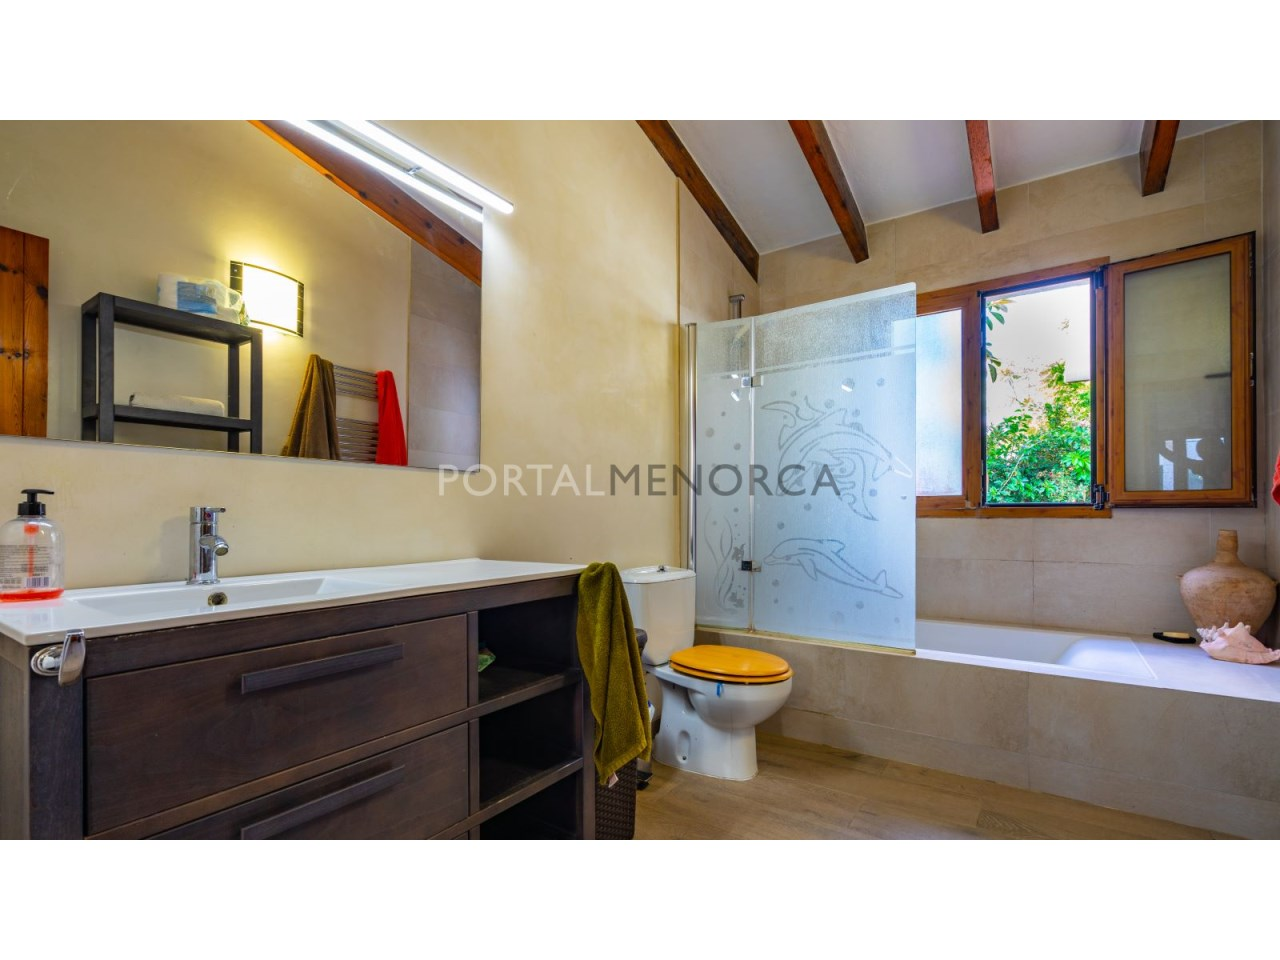 FARM-HOUSE-SALE-MENORCA (4)